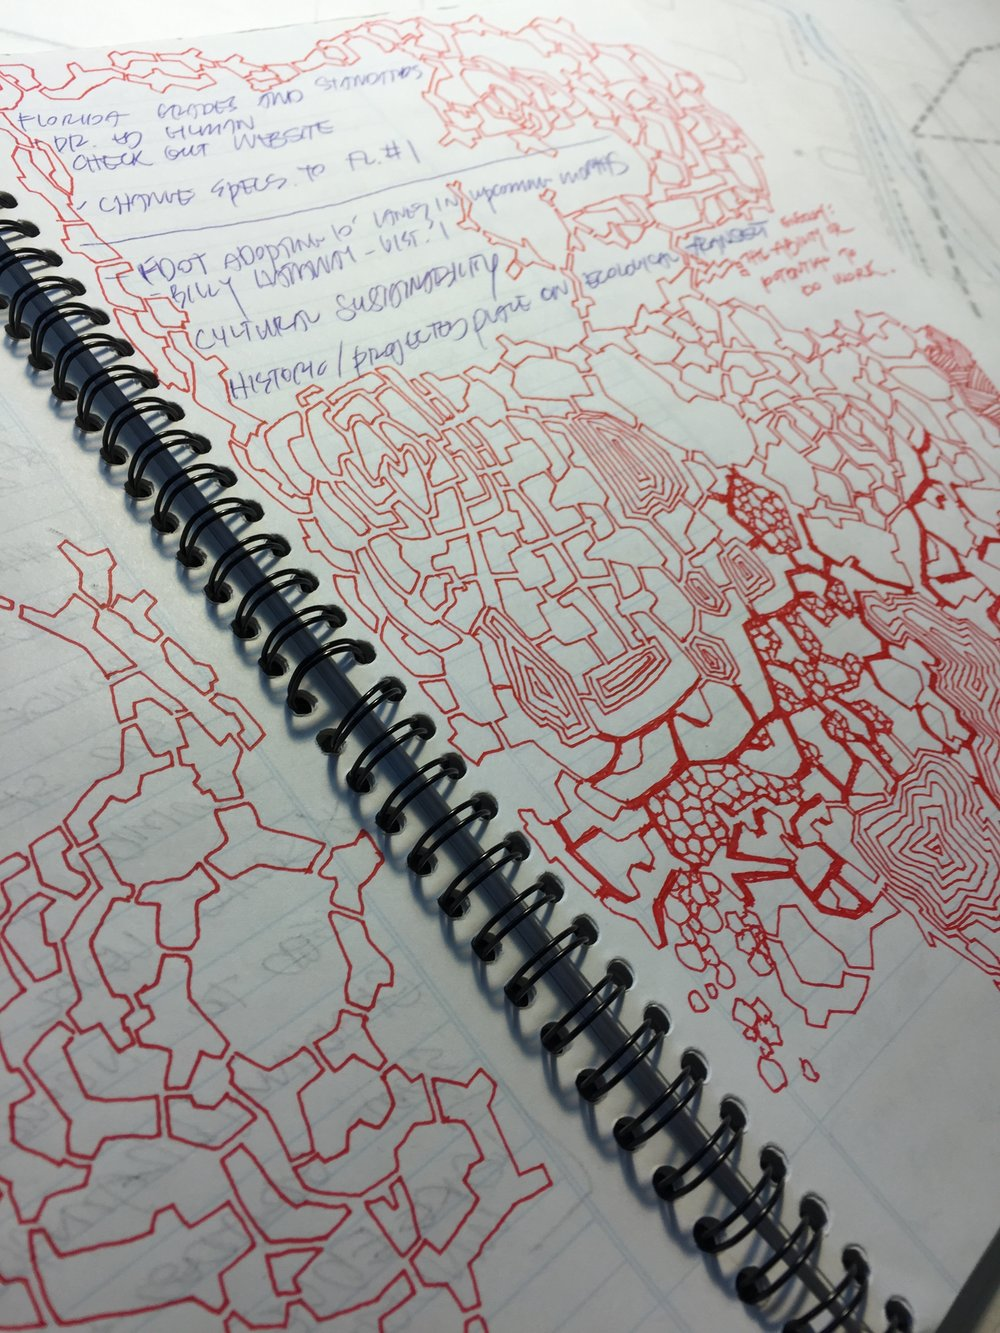 Doodling during meetings is important to me.I keep my notebooks not for the notes, but for the sketches in the margins and drawings across the pages. - I keep my notebooks not for the notes, but for the sketches in the margins and drawings across the pages.